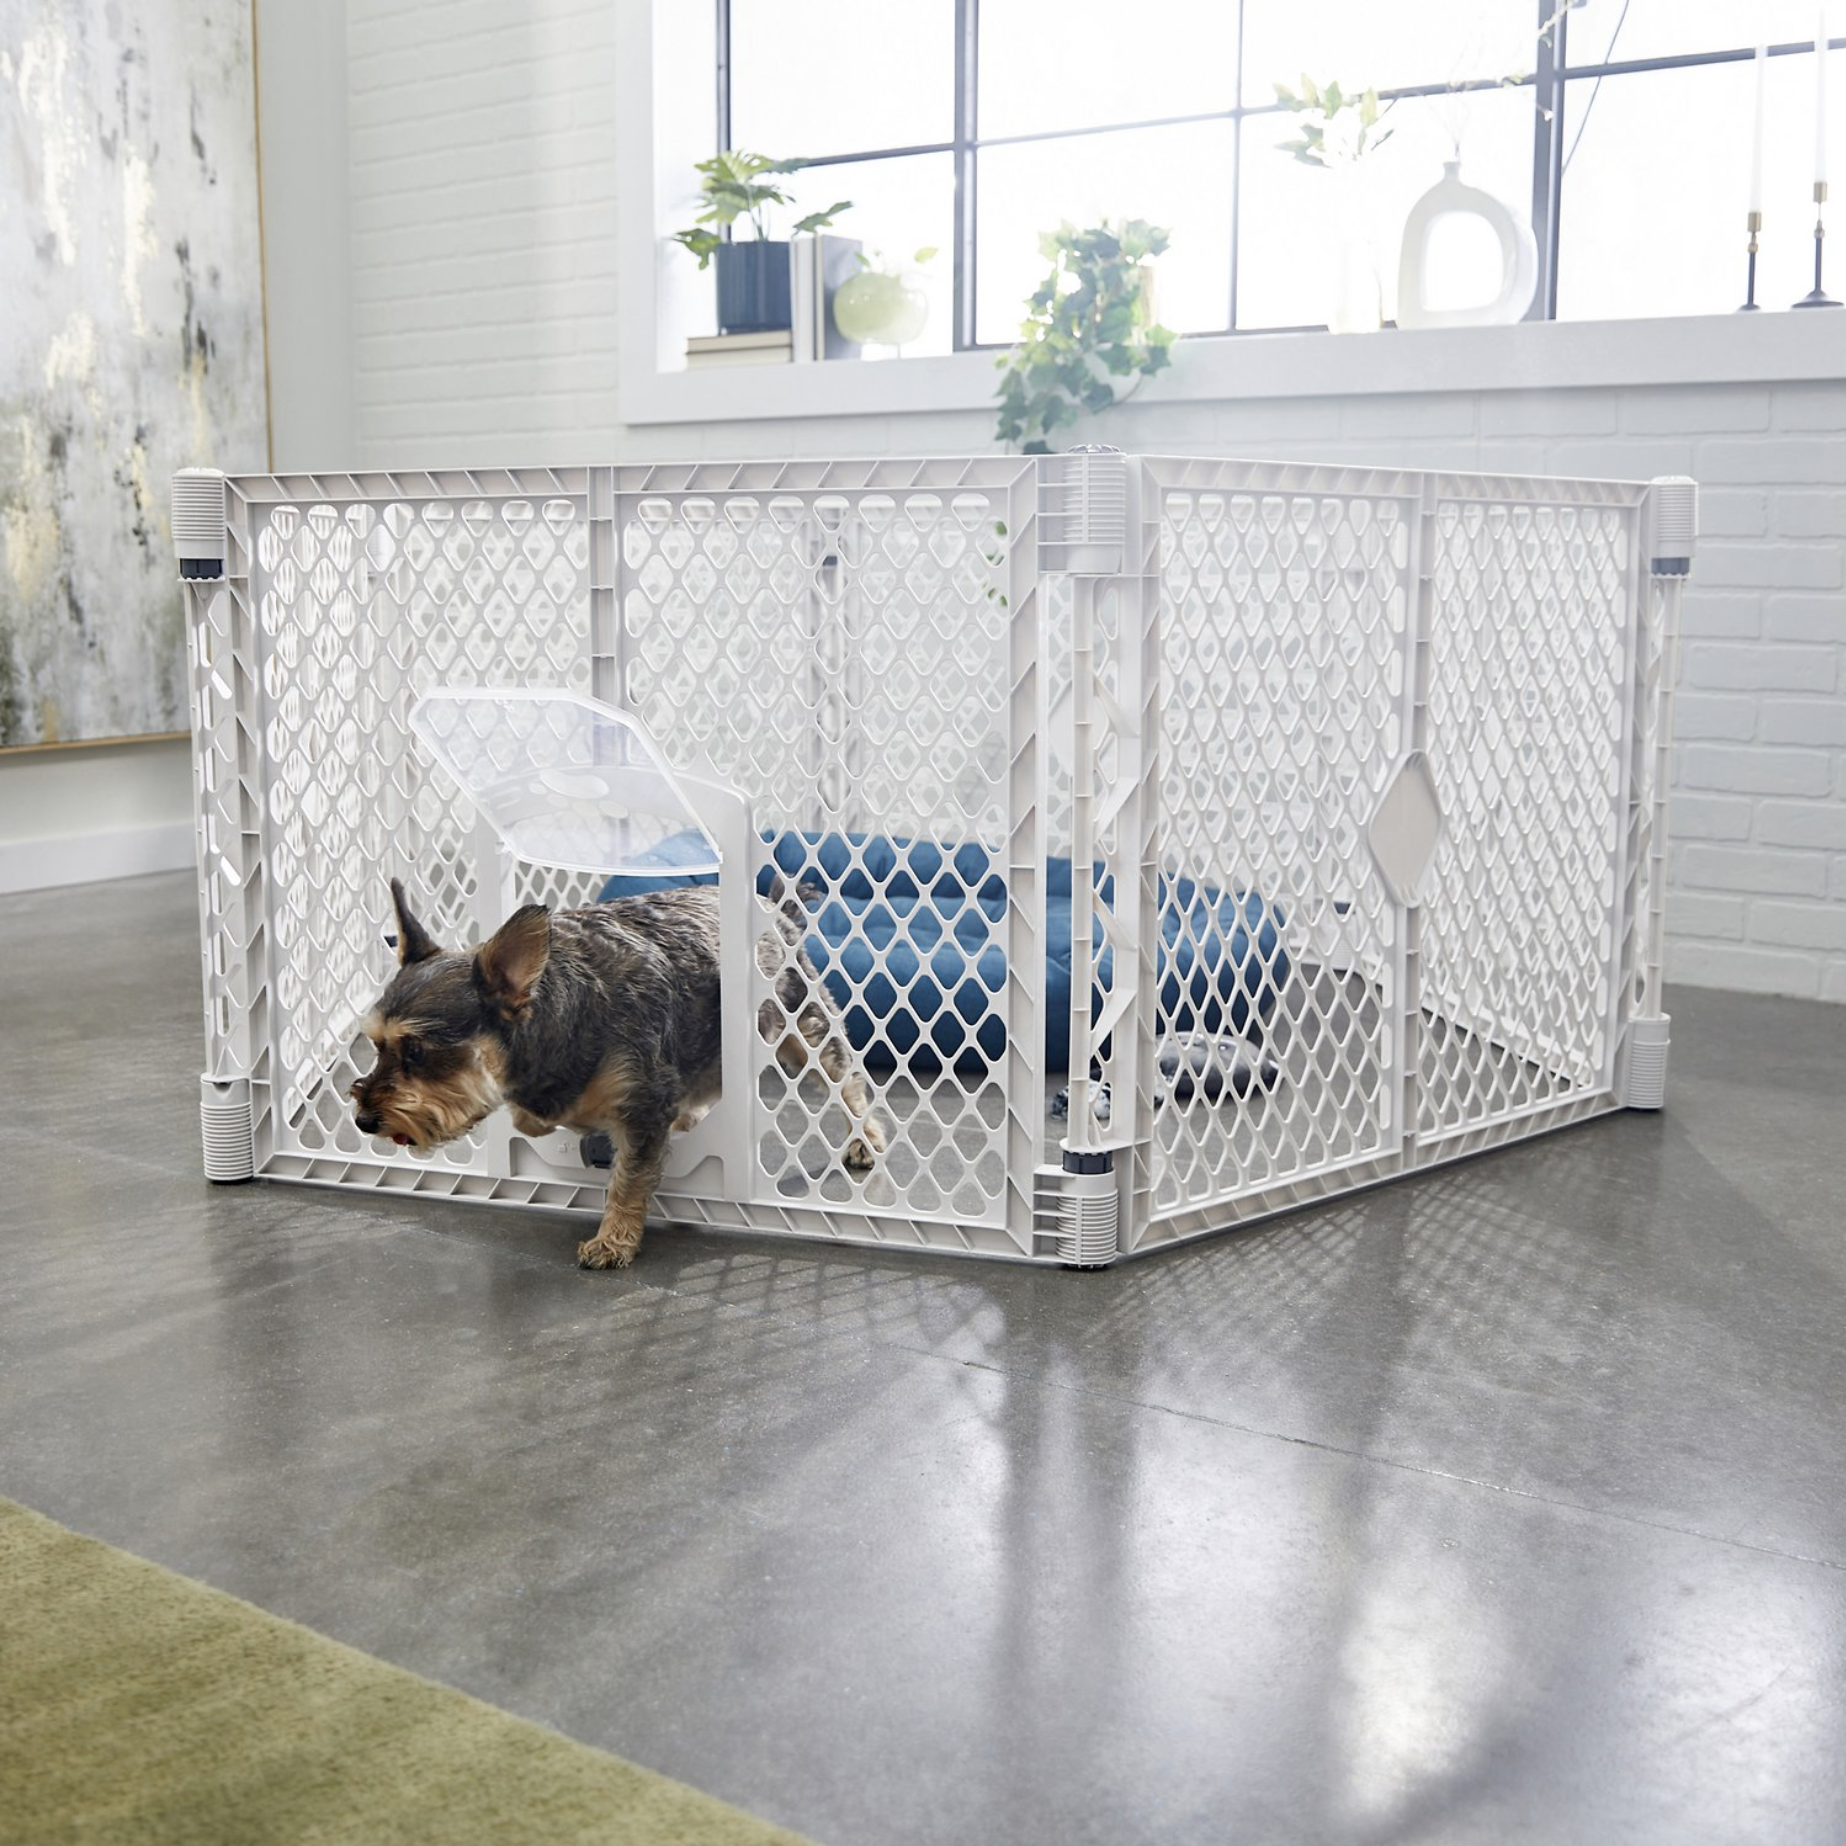 16 Best Expandable Gates for Dogs feat. FRISCO 6-Panel Convertible Plastic Playpen Divider via Chewy